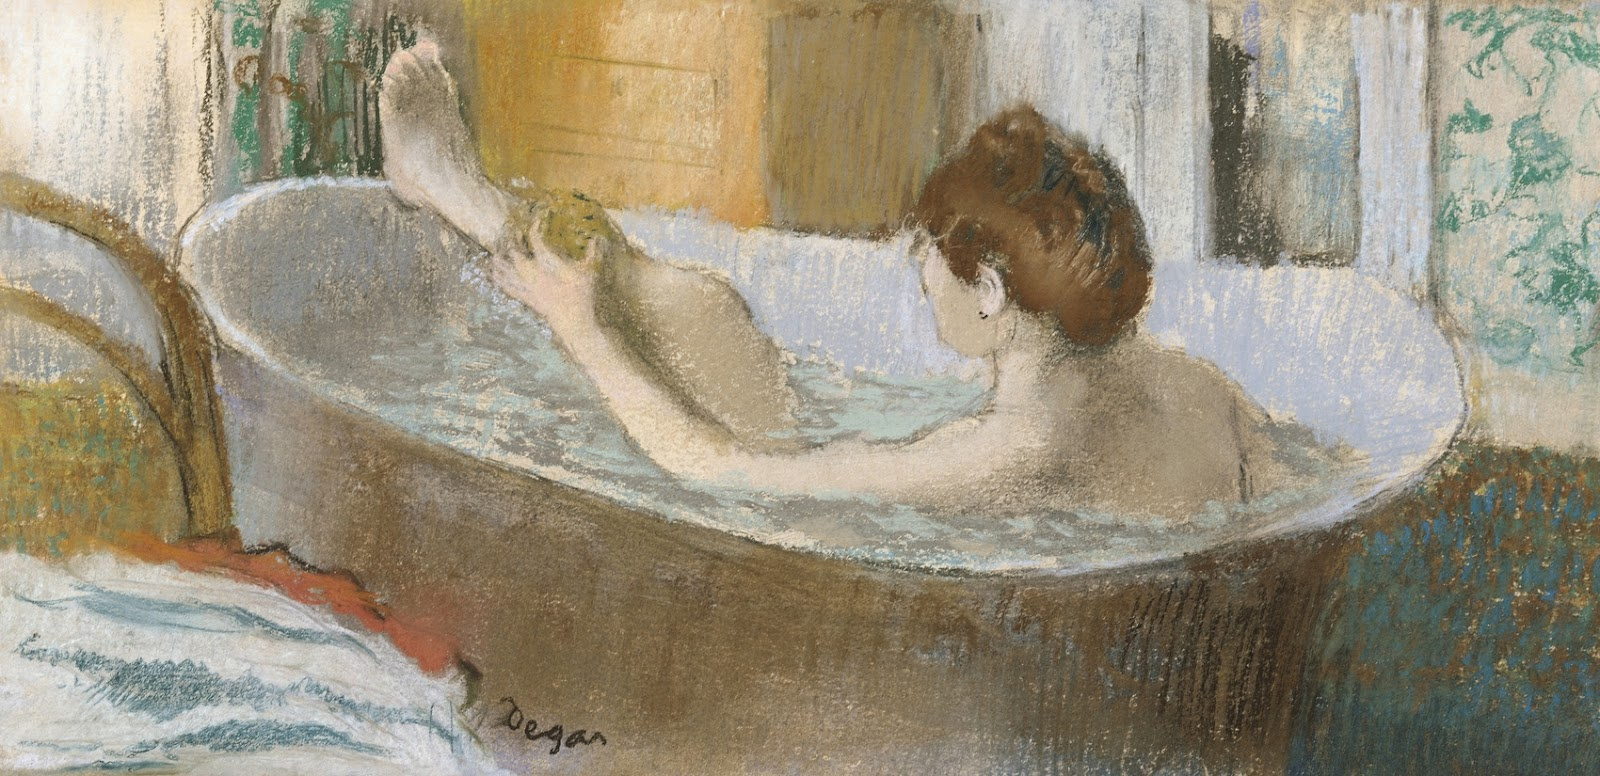 Edgar Degas. Woman in bath washing leg